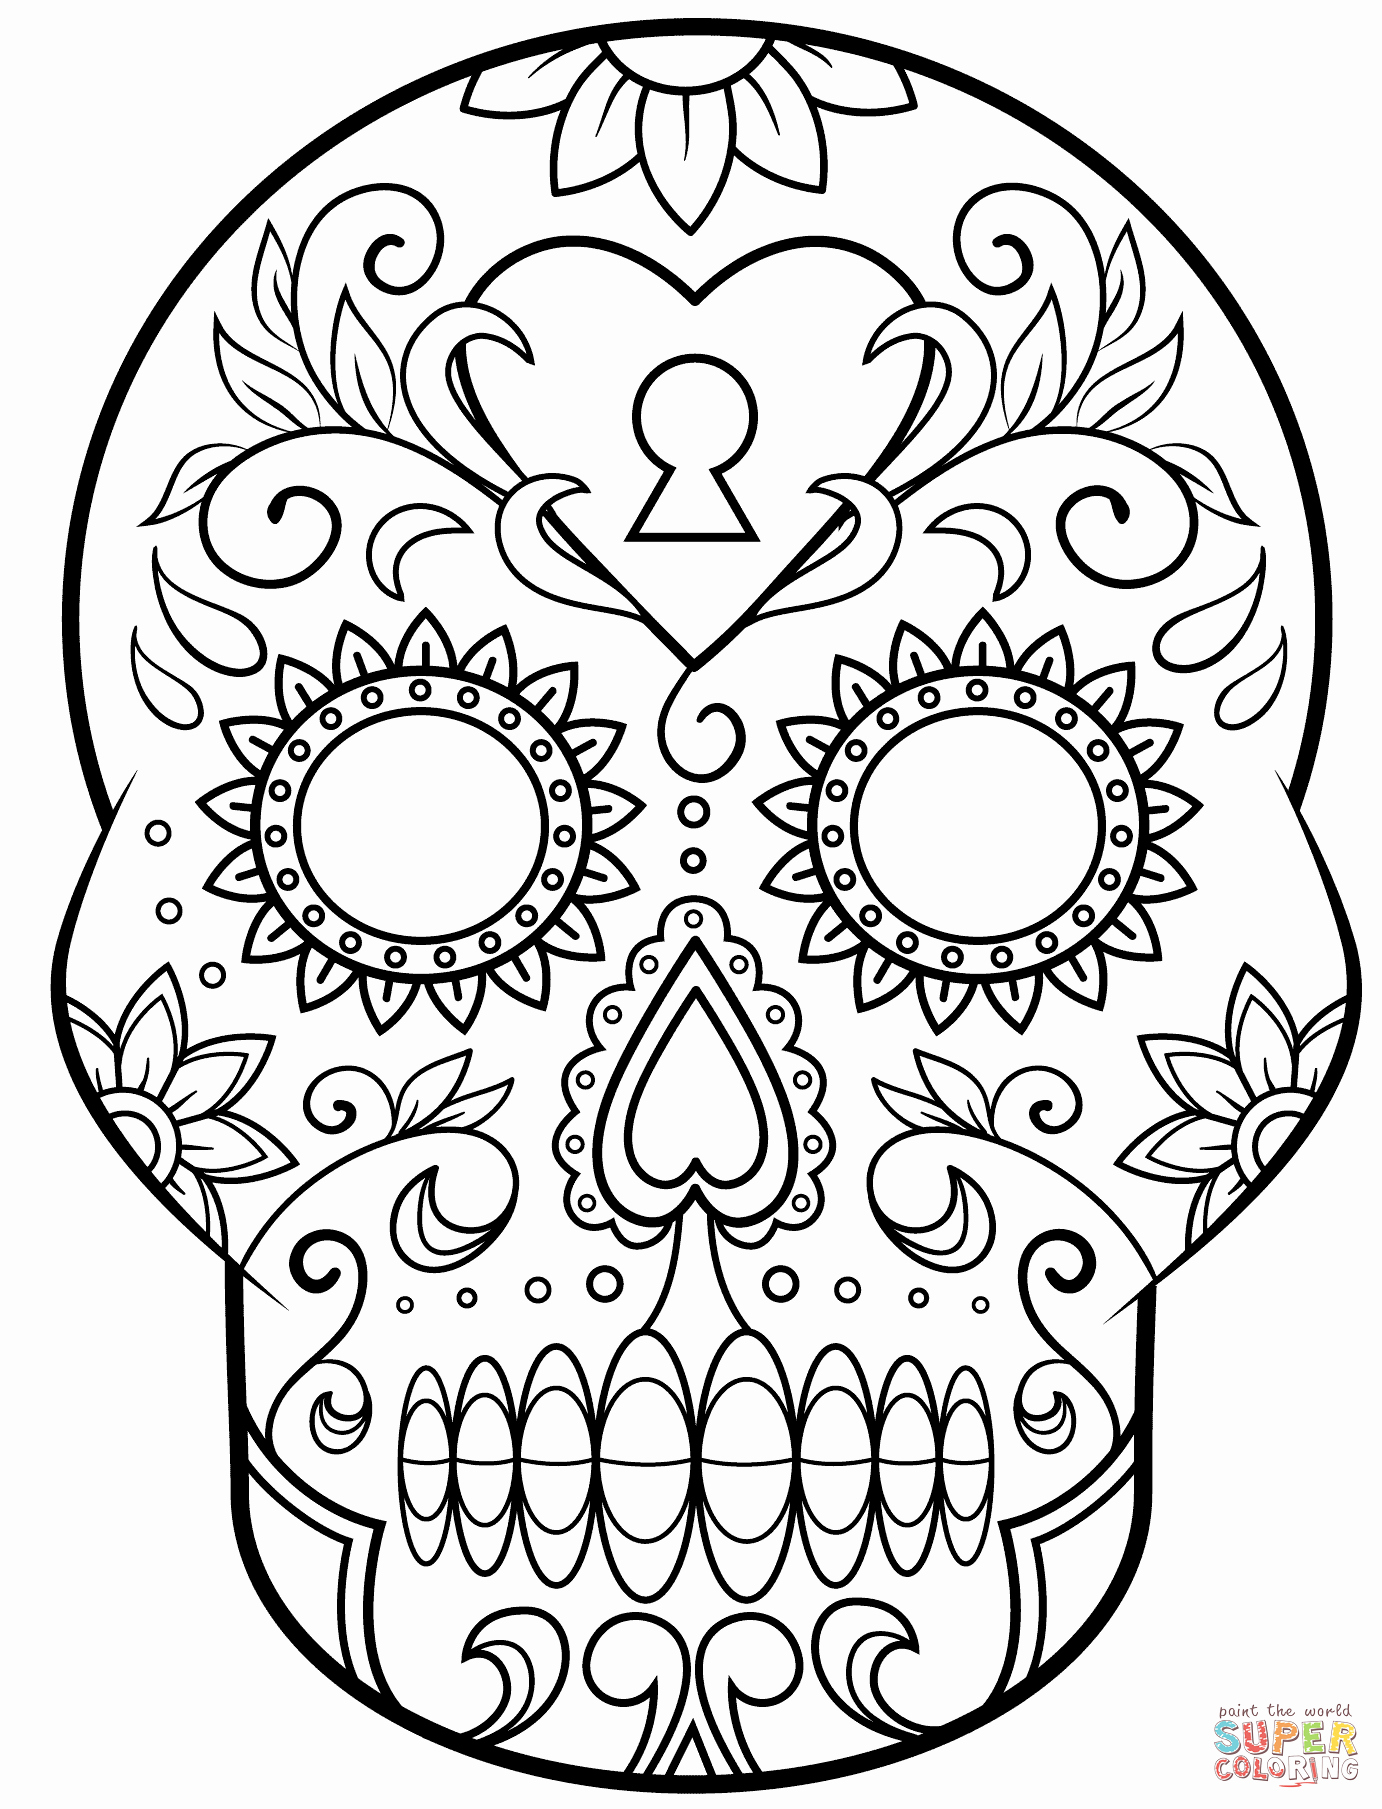 Dia De Los Muertos Worksheet Luxury Day Of the Dead Sugar Skull Coloring Page